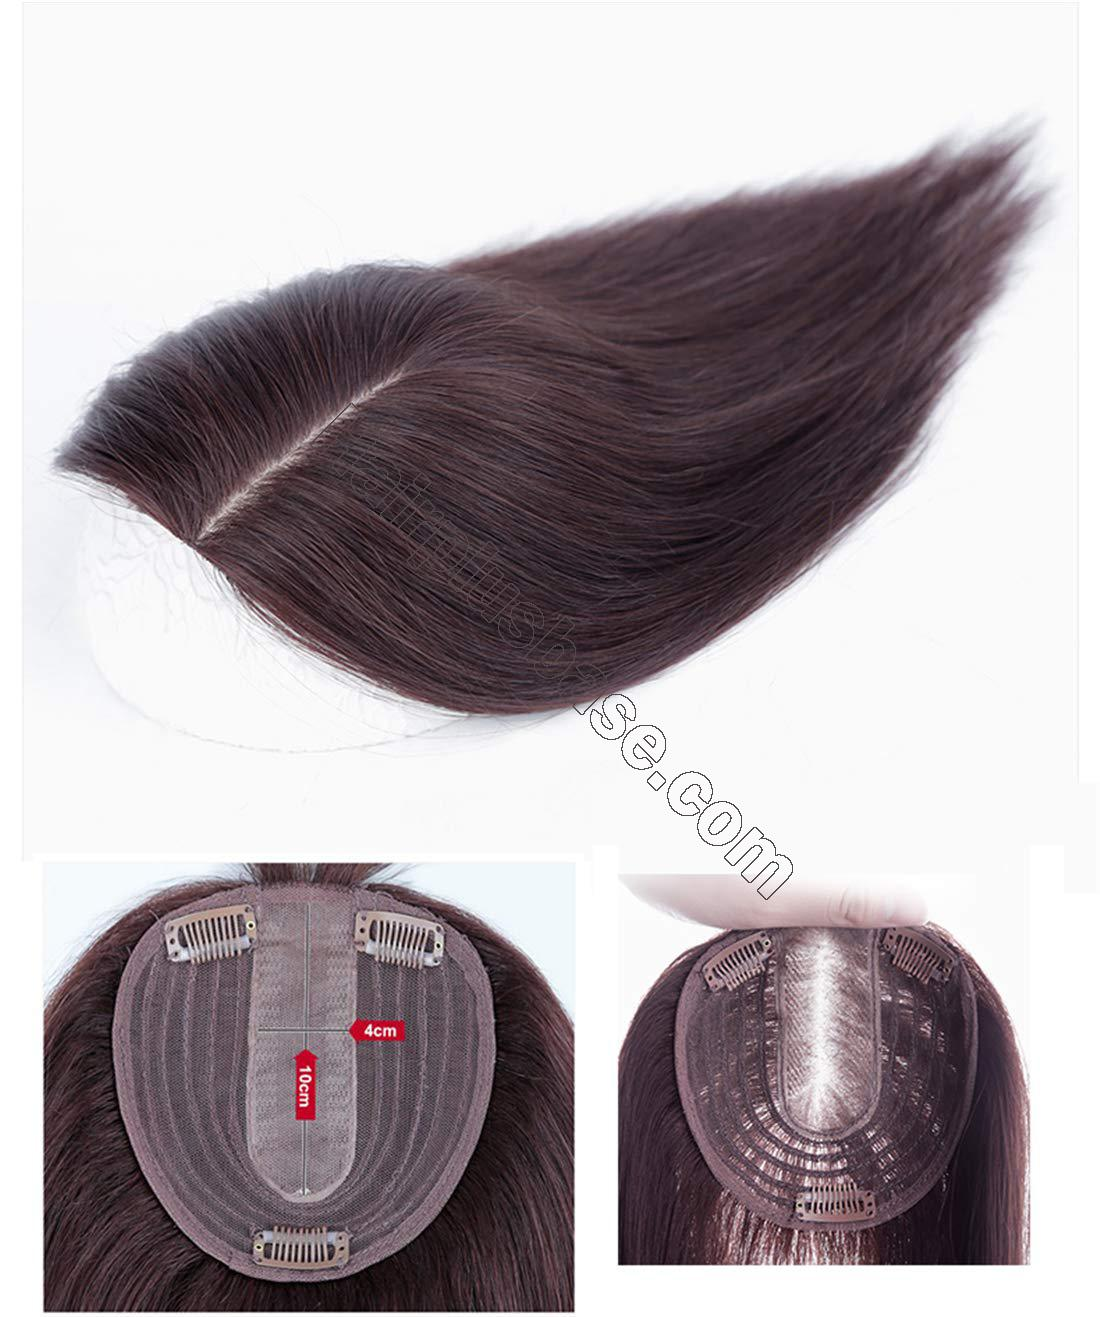 Natural Silk Base Parting Human Hair Toppers for Women with Grey and Thinning Hair, 5 Inch x 5.5 Inch Crown Topper, Left Part 12.6 Inch 5